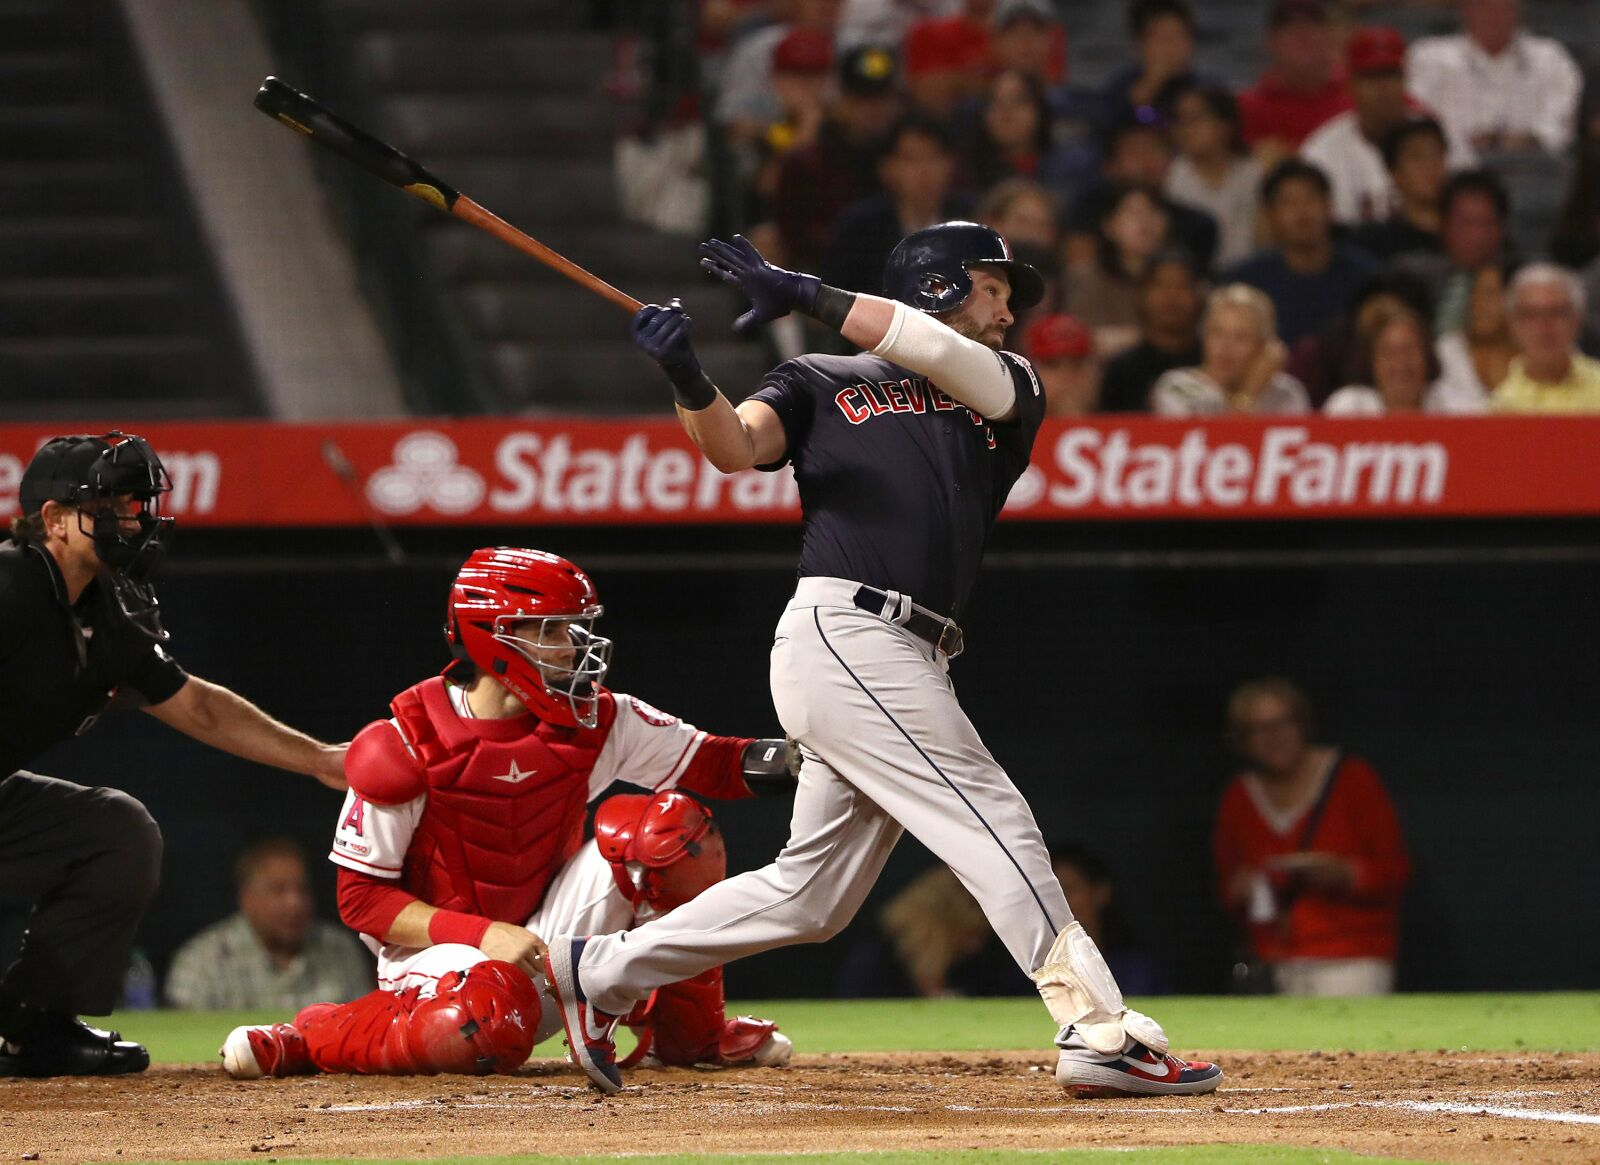 Chicago Cubs: Jason Kipnis would be an illogical signing